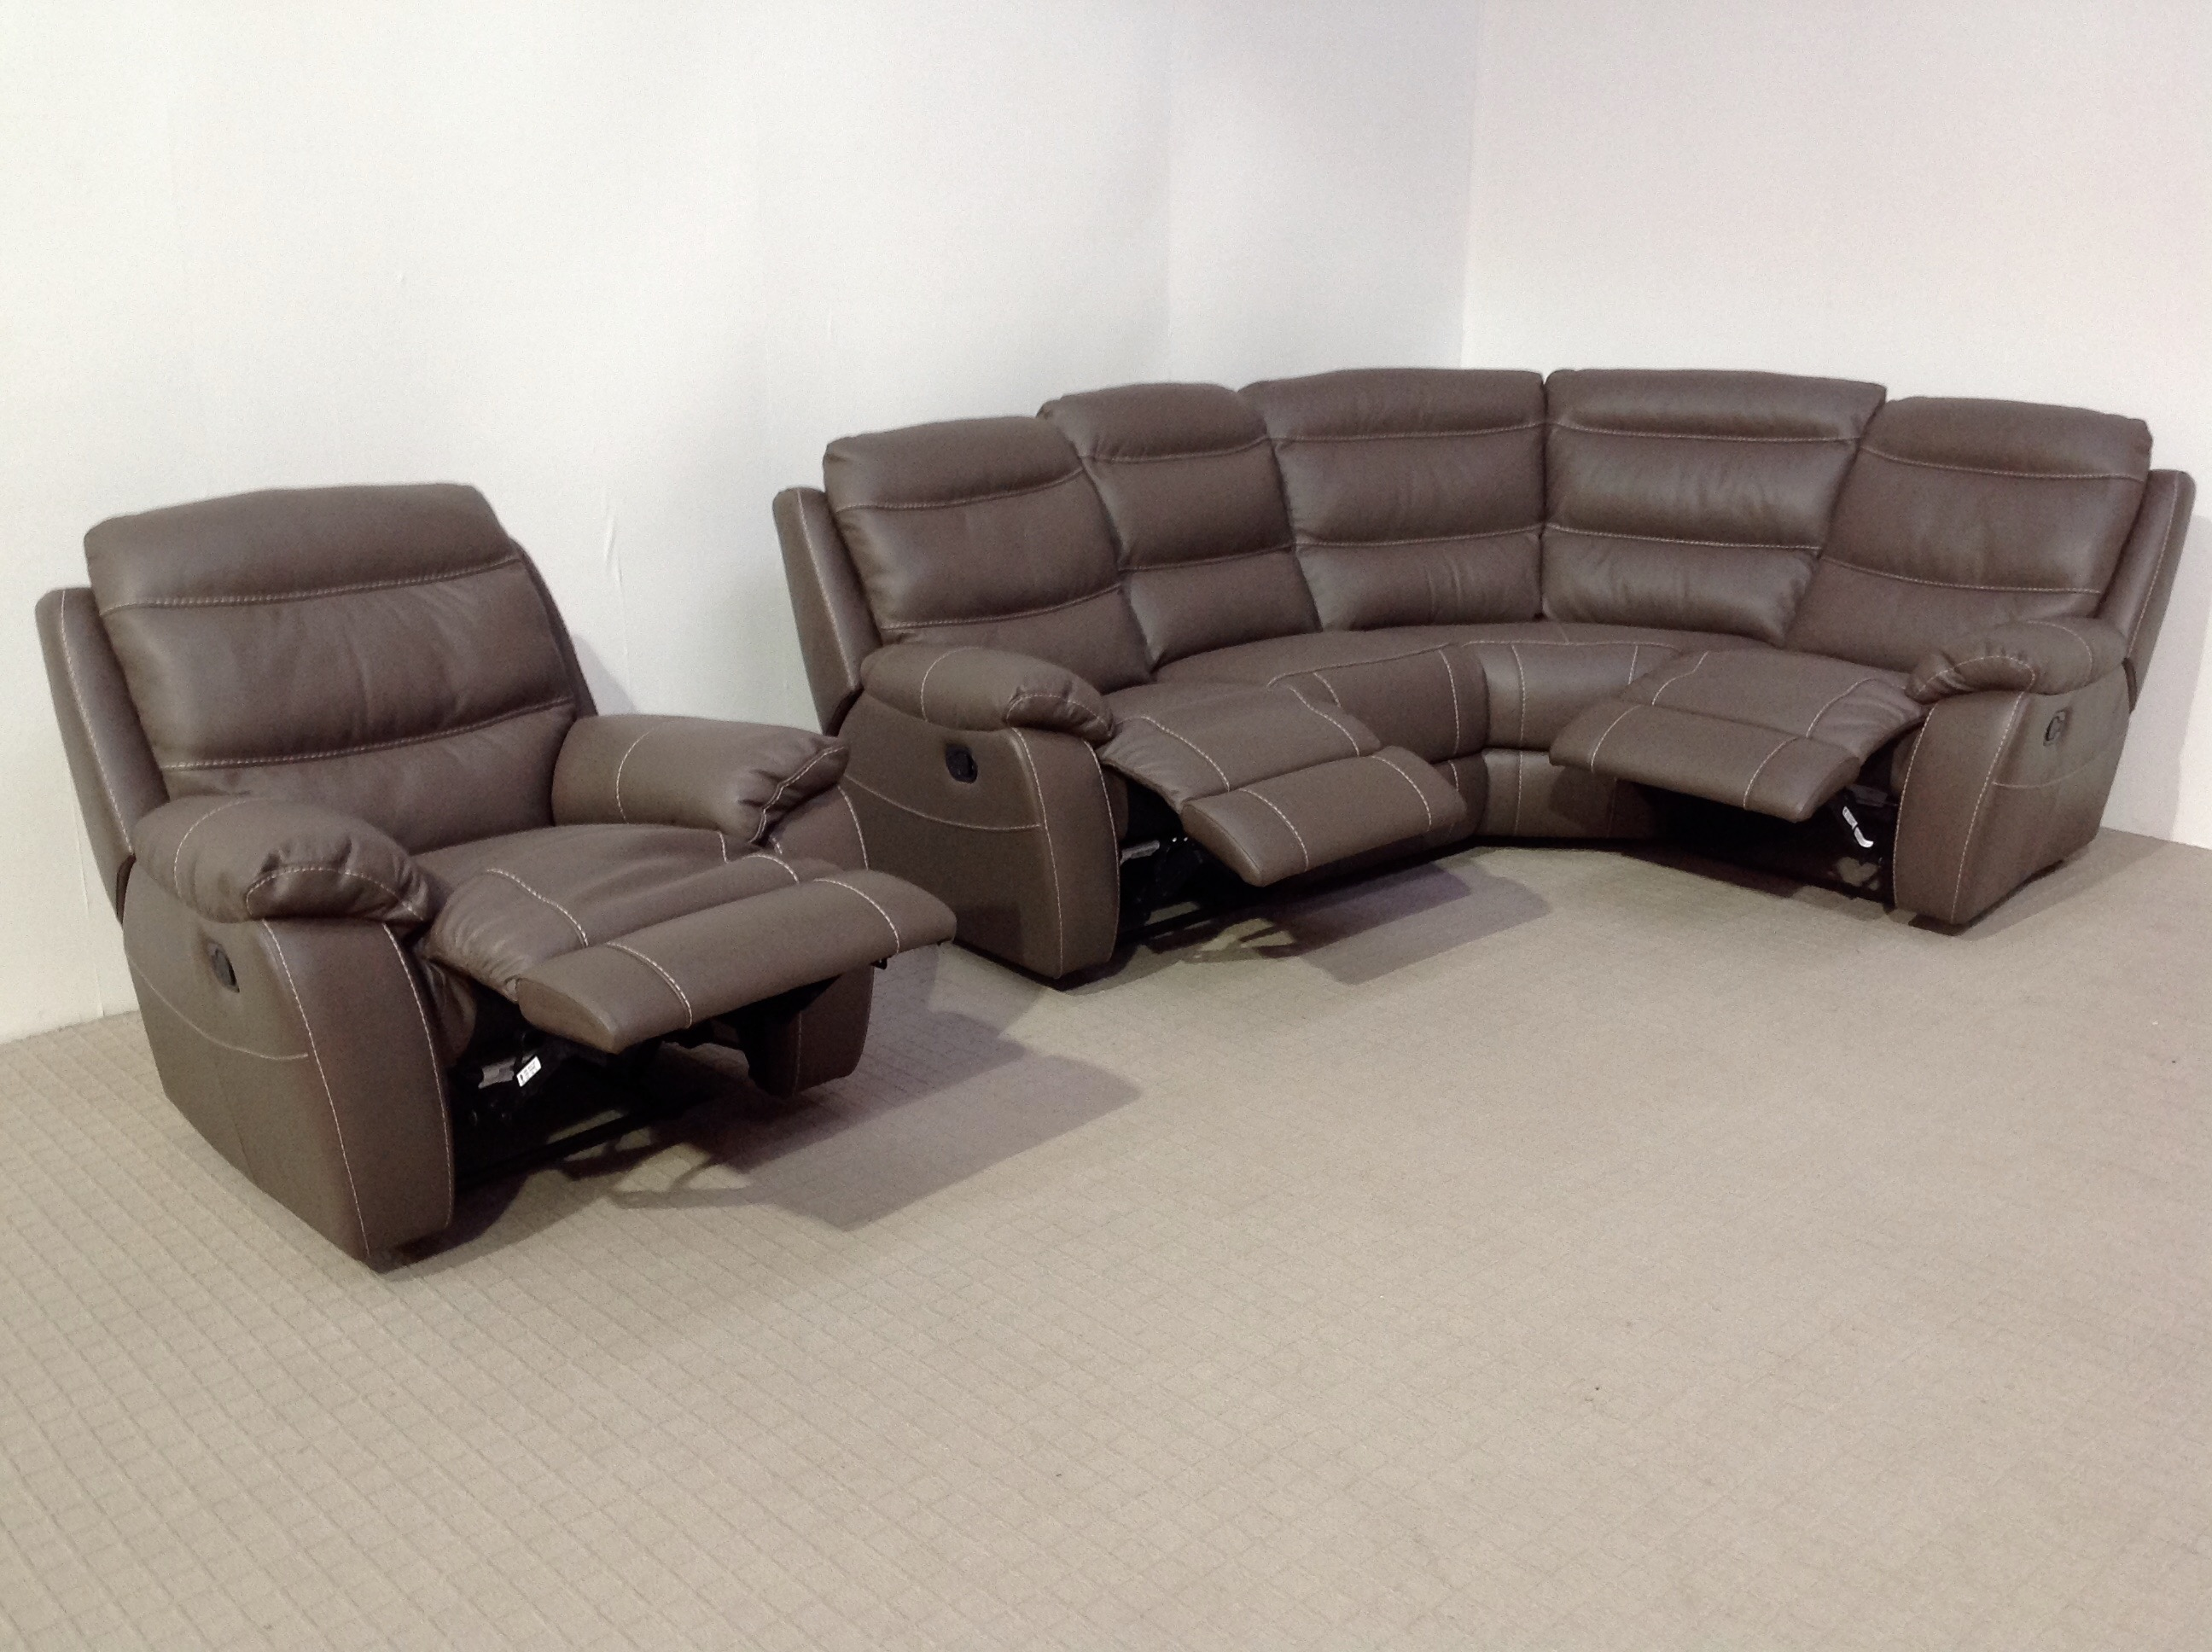 softaly leather reclining corner sofa and reclining matching chair